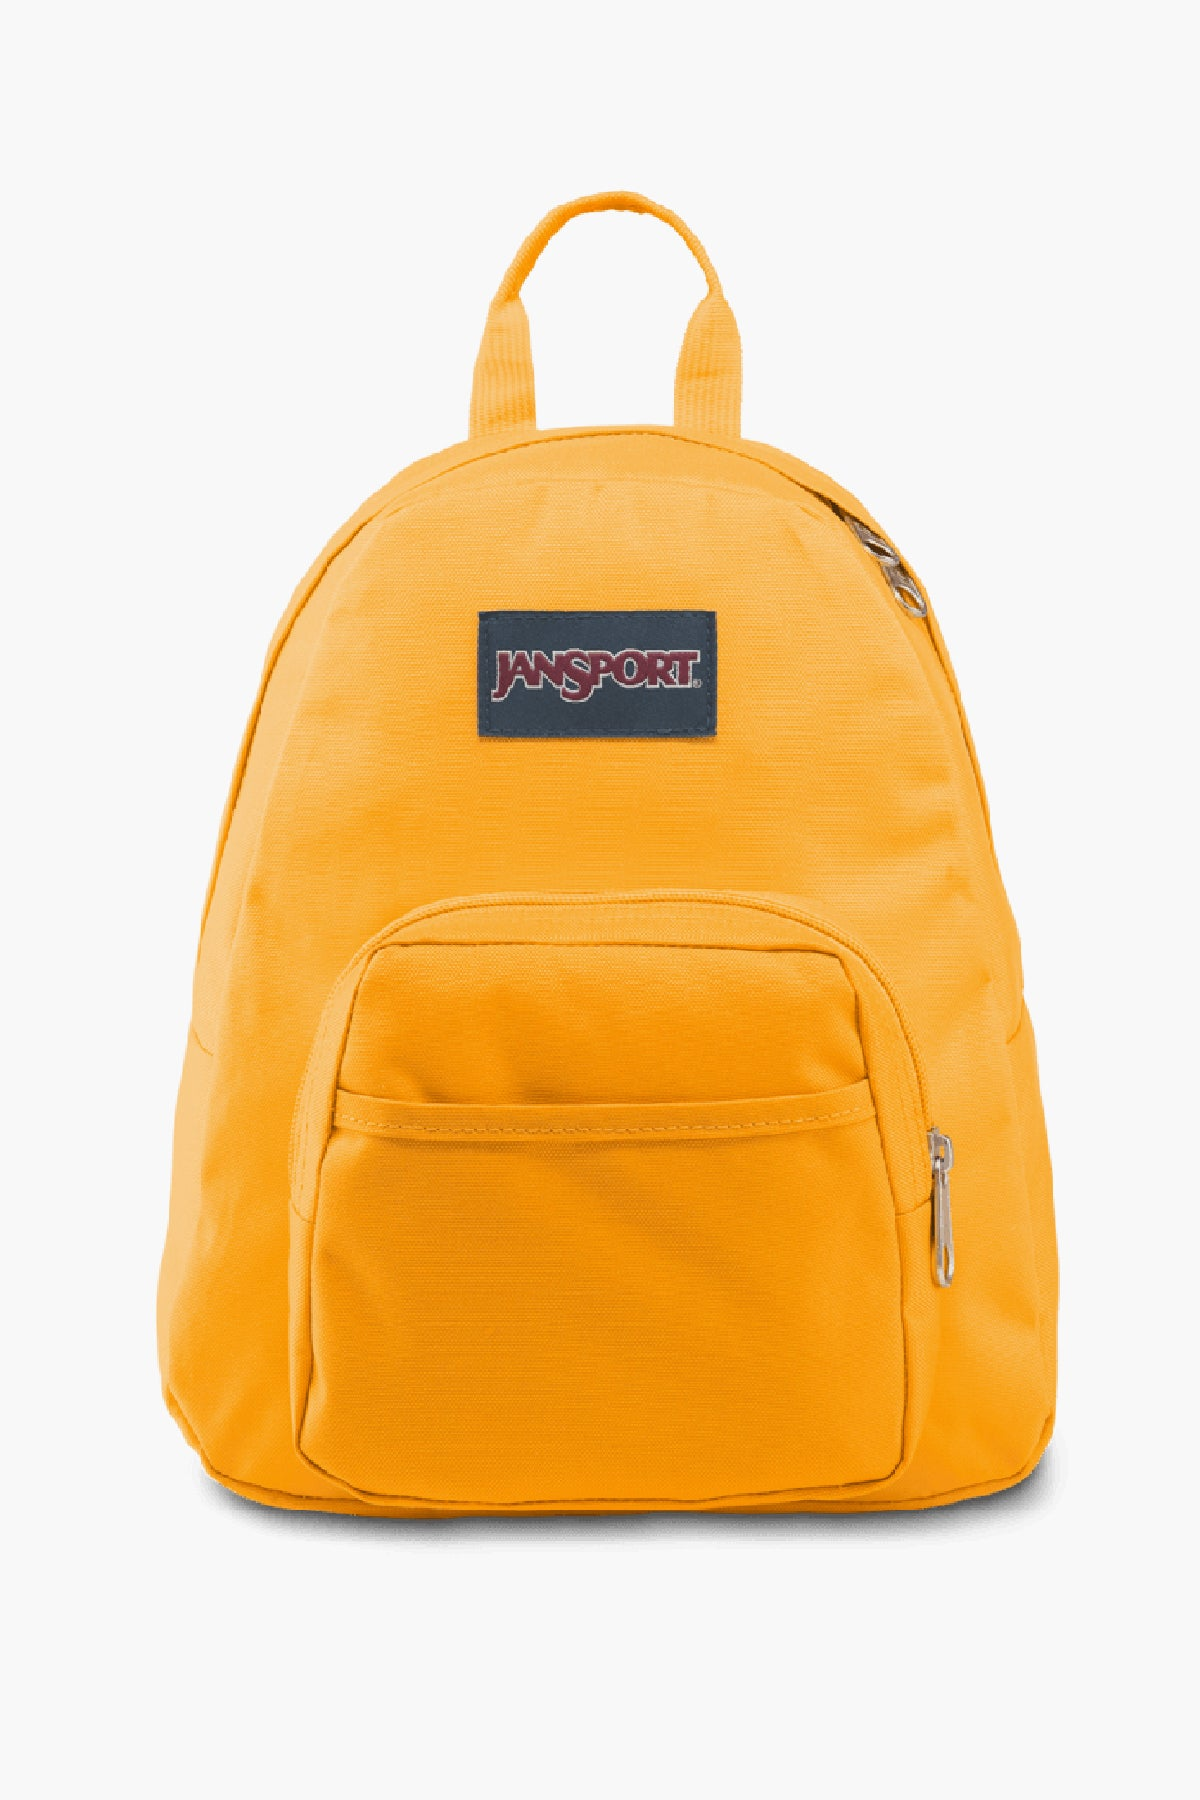 JanSport Half Pint Kids Backpack - Yellow